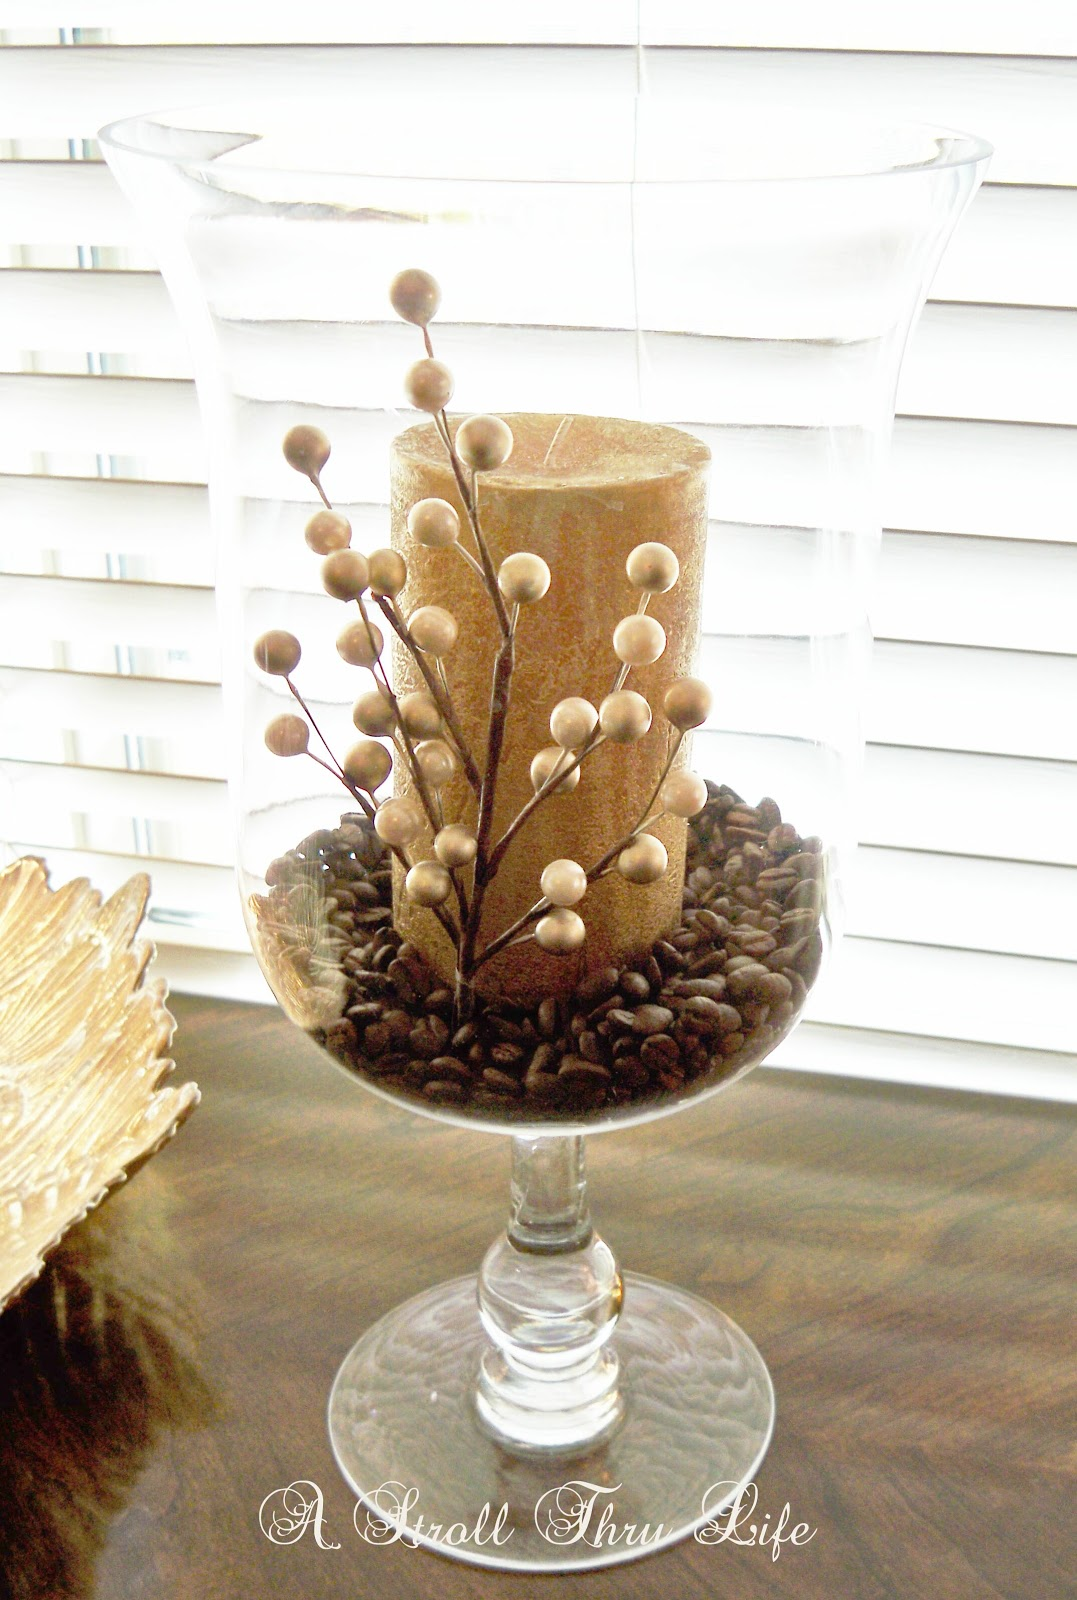 Anchor your candles in coffee beans for looks and aroma